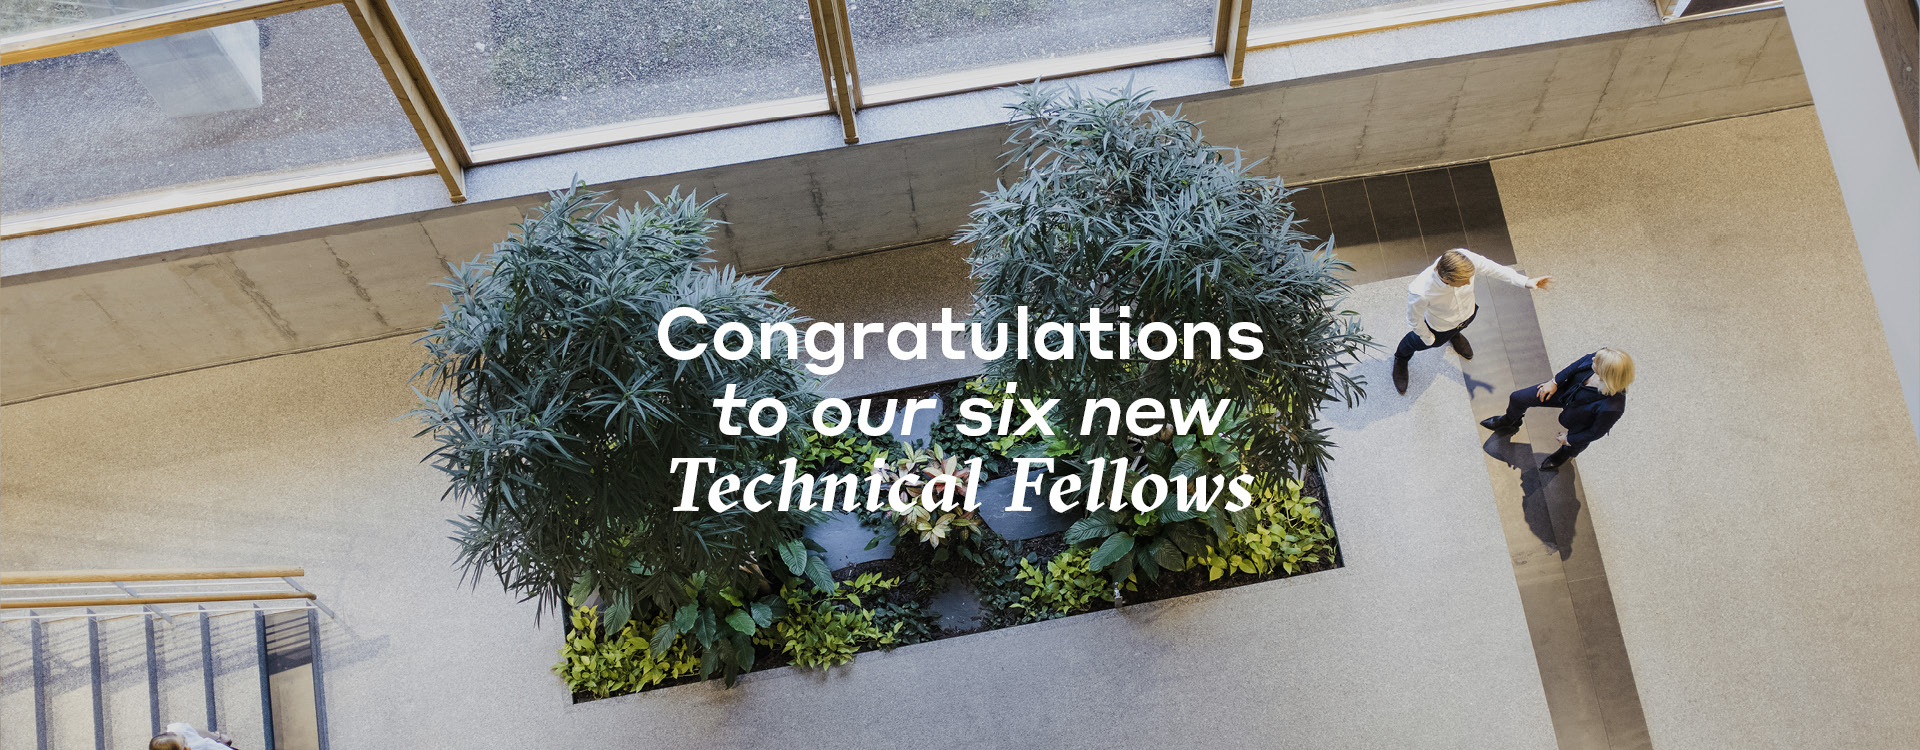 Congratulations to our six new Technical Fellows